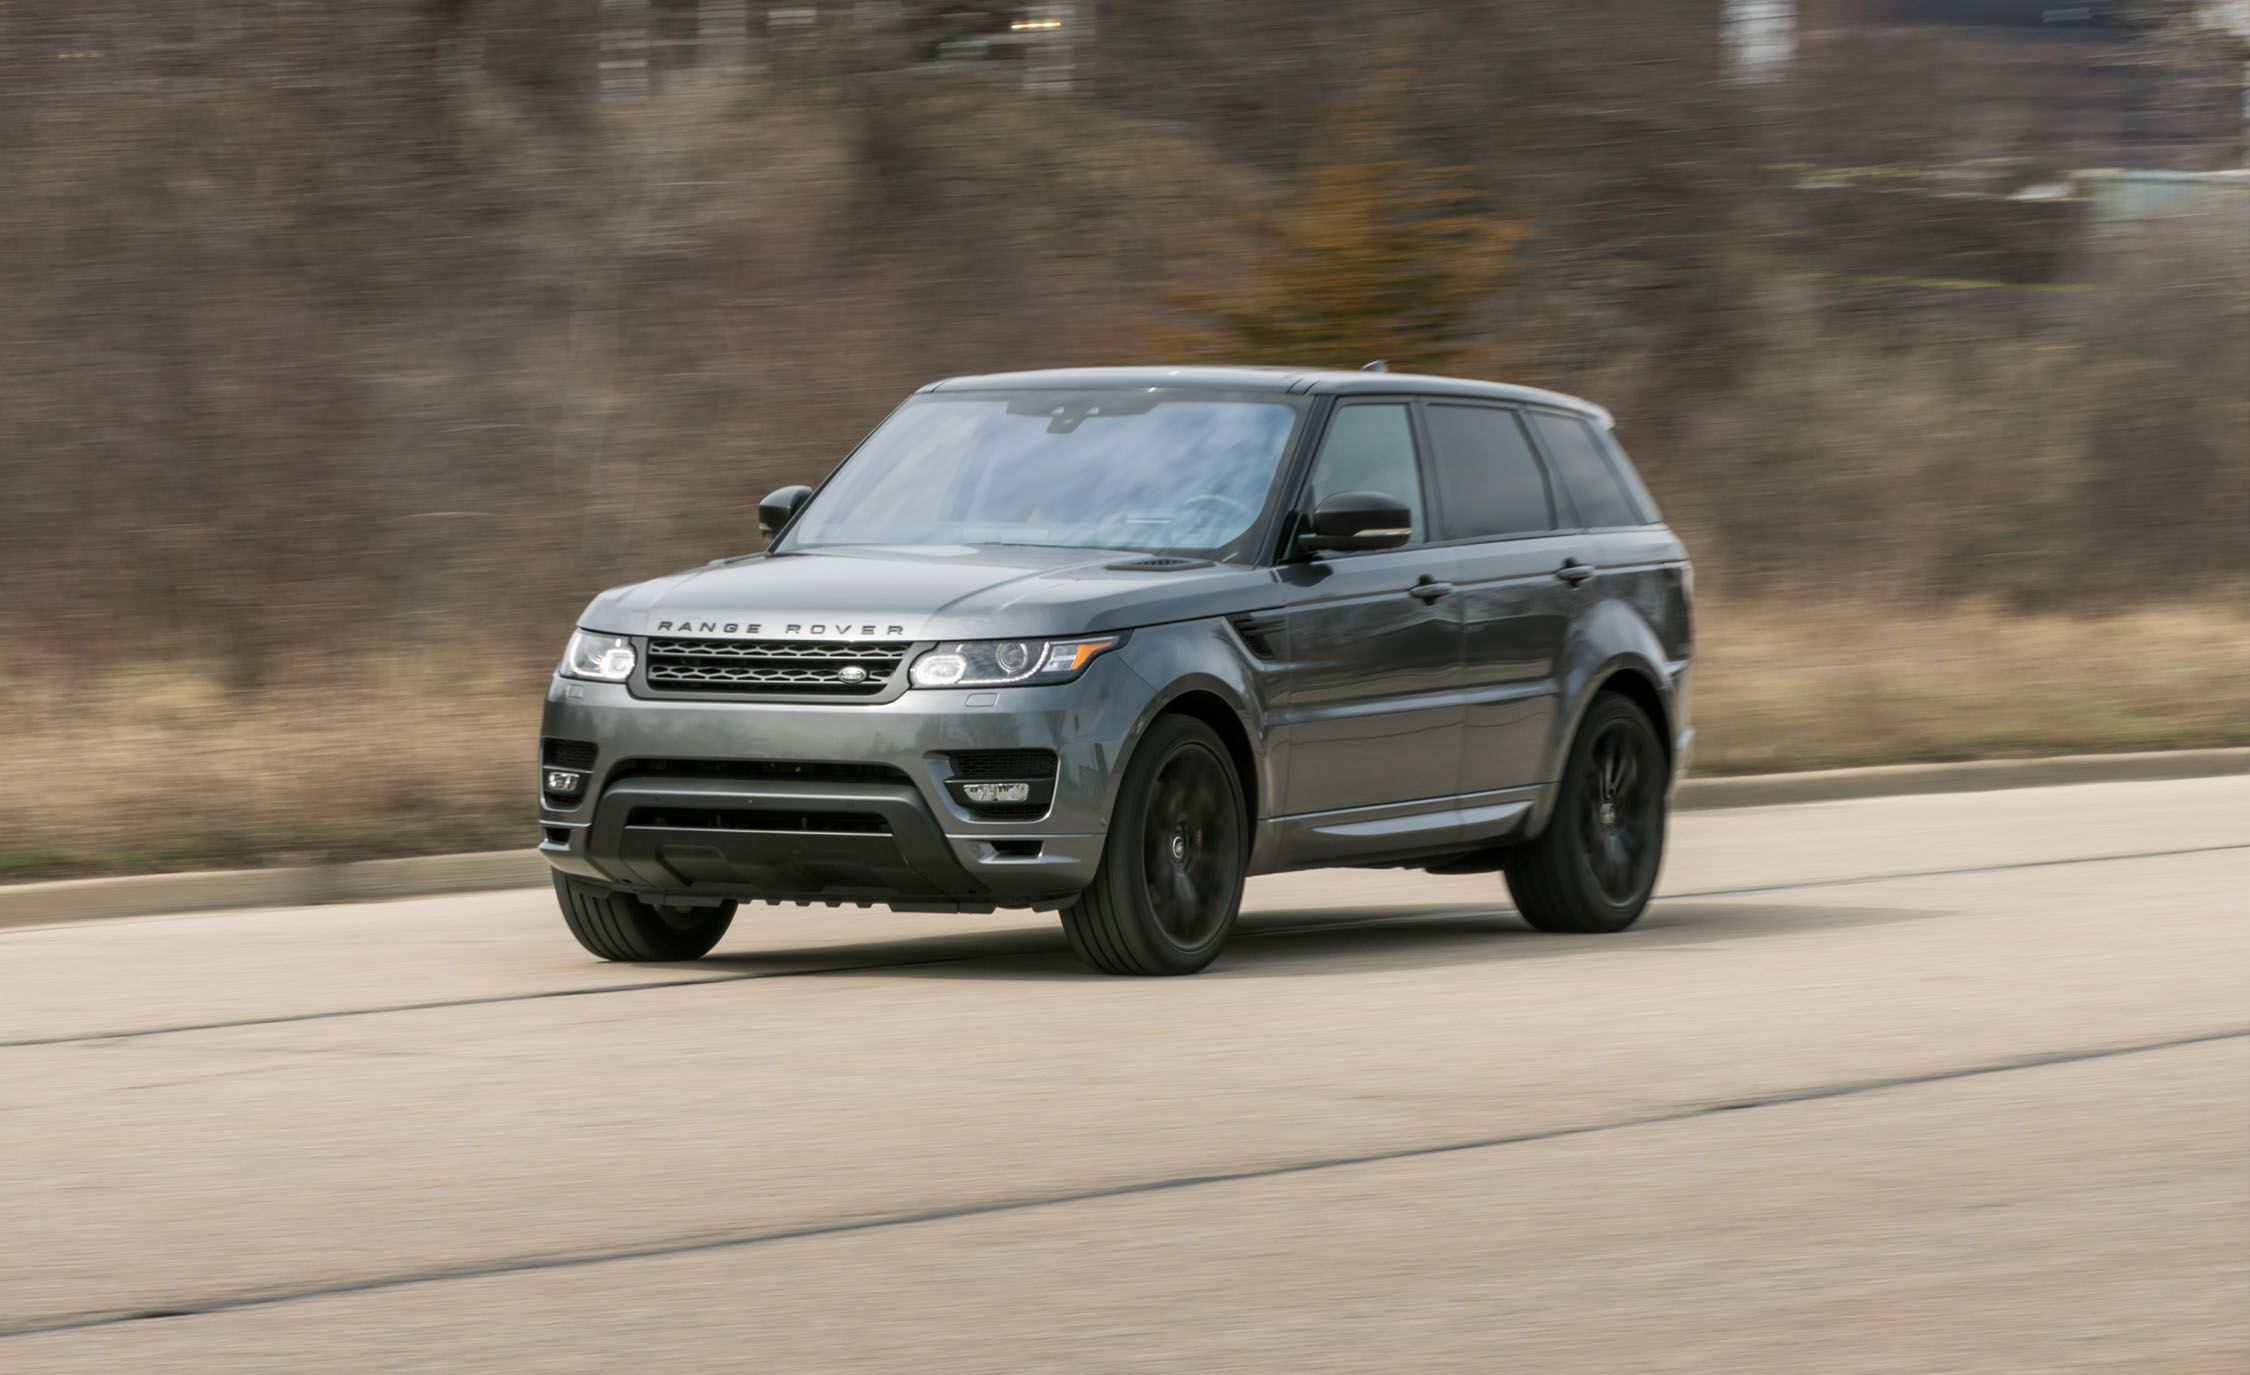 2019 land rover range rover sport supercharged svr reviews land rover range rover sport. Black Bedroom Furniture Sets. Home Design Ideas